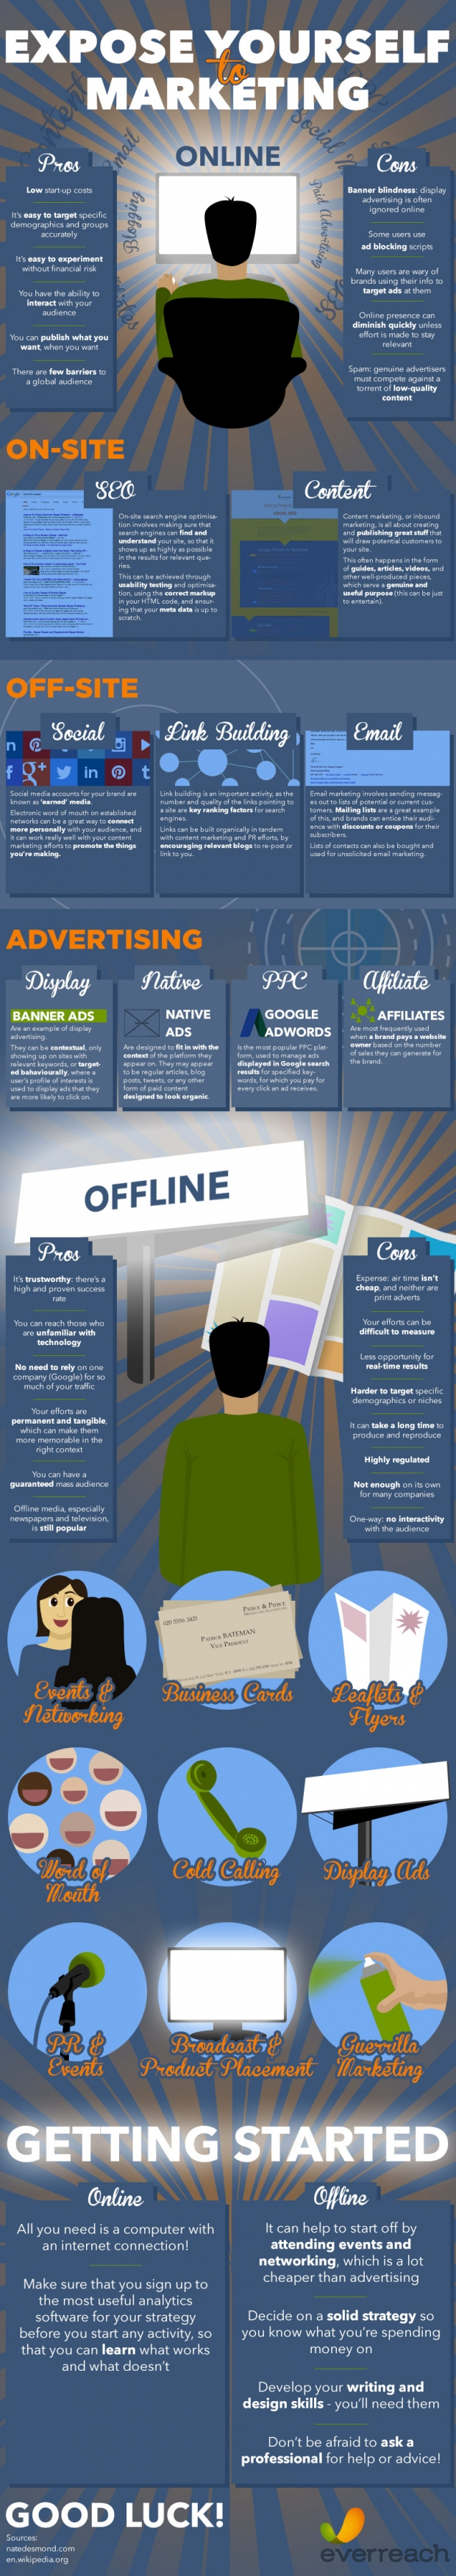 Marketing Strategies: Guide to Marketing Online and Offline [Infographic]